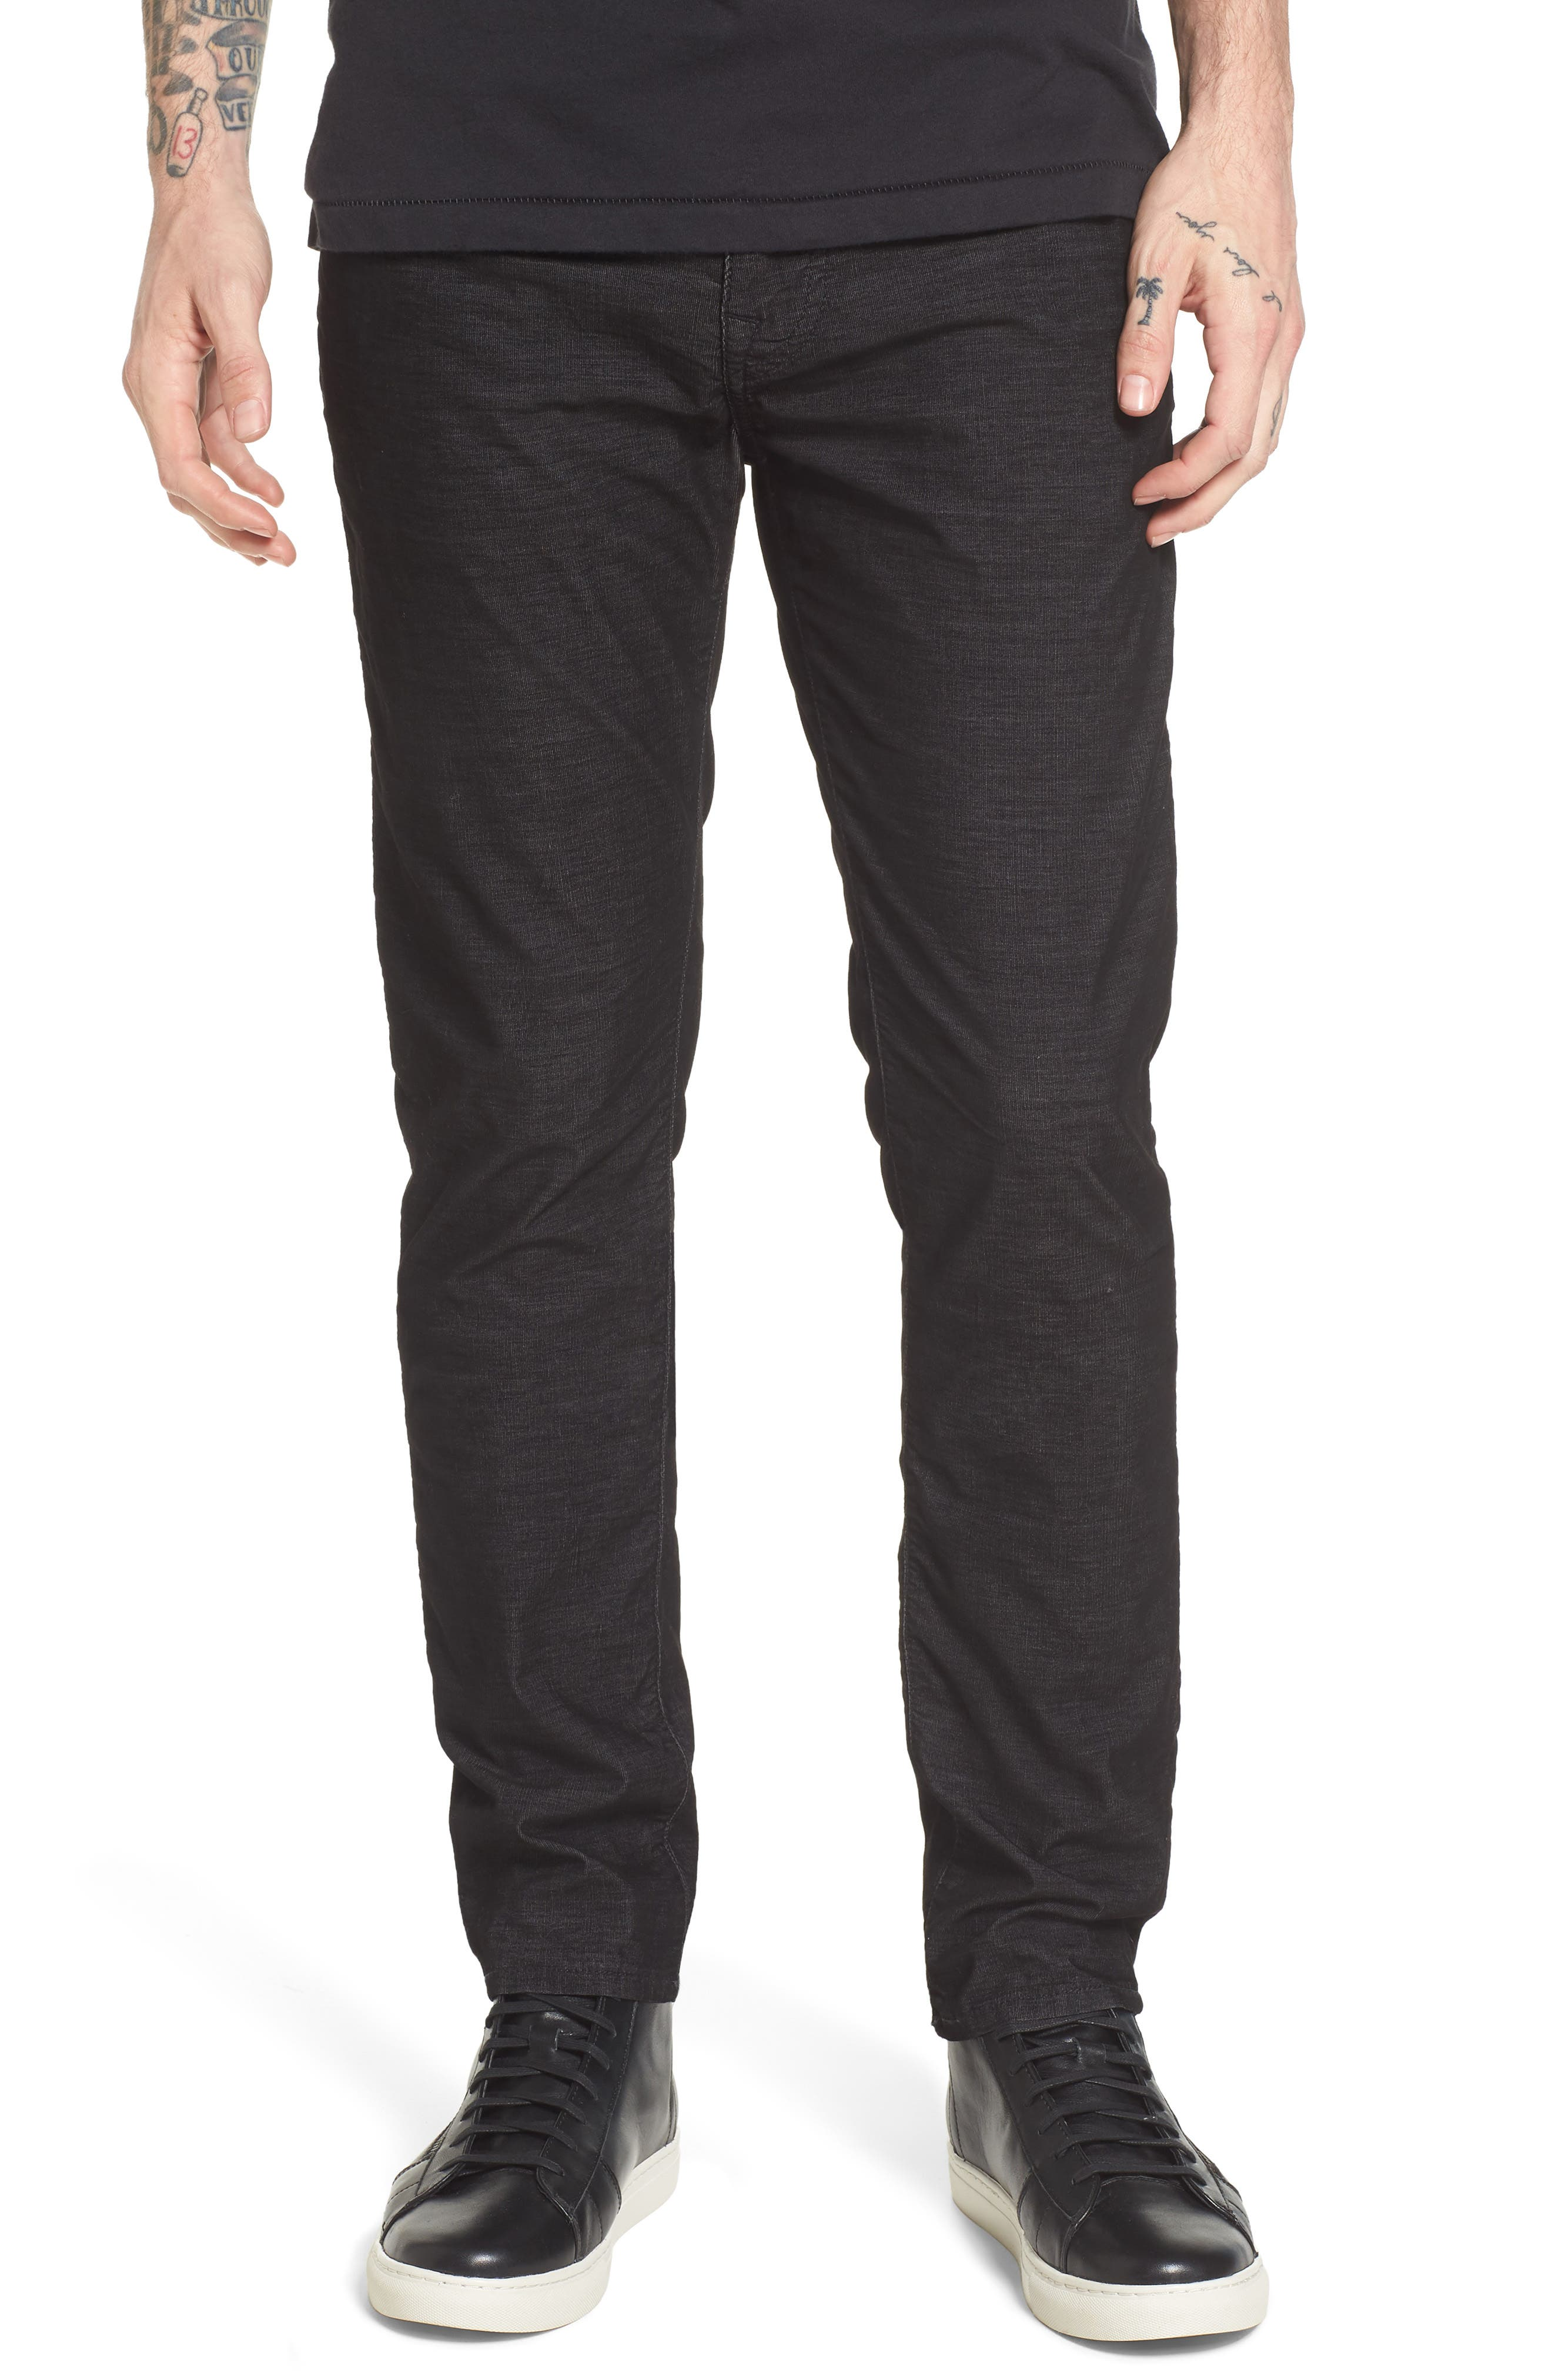 Rocco Skinny Fit Corduroy Jeans,                         Main,                         color, Black